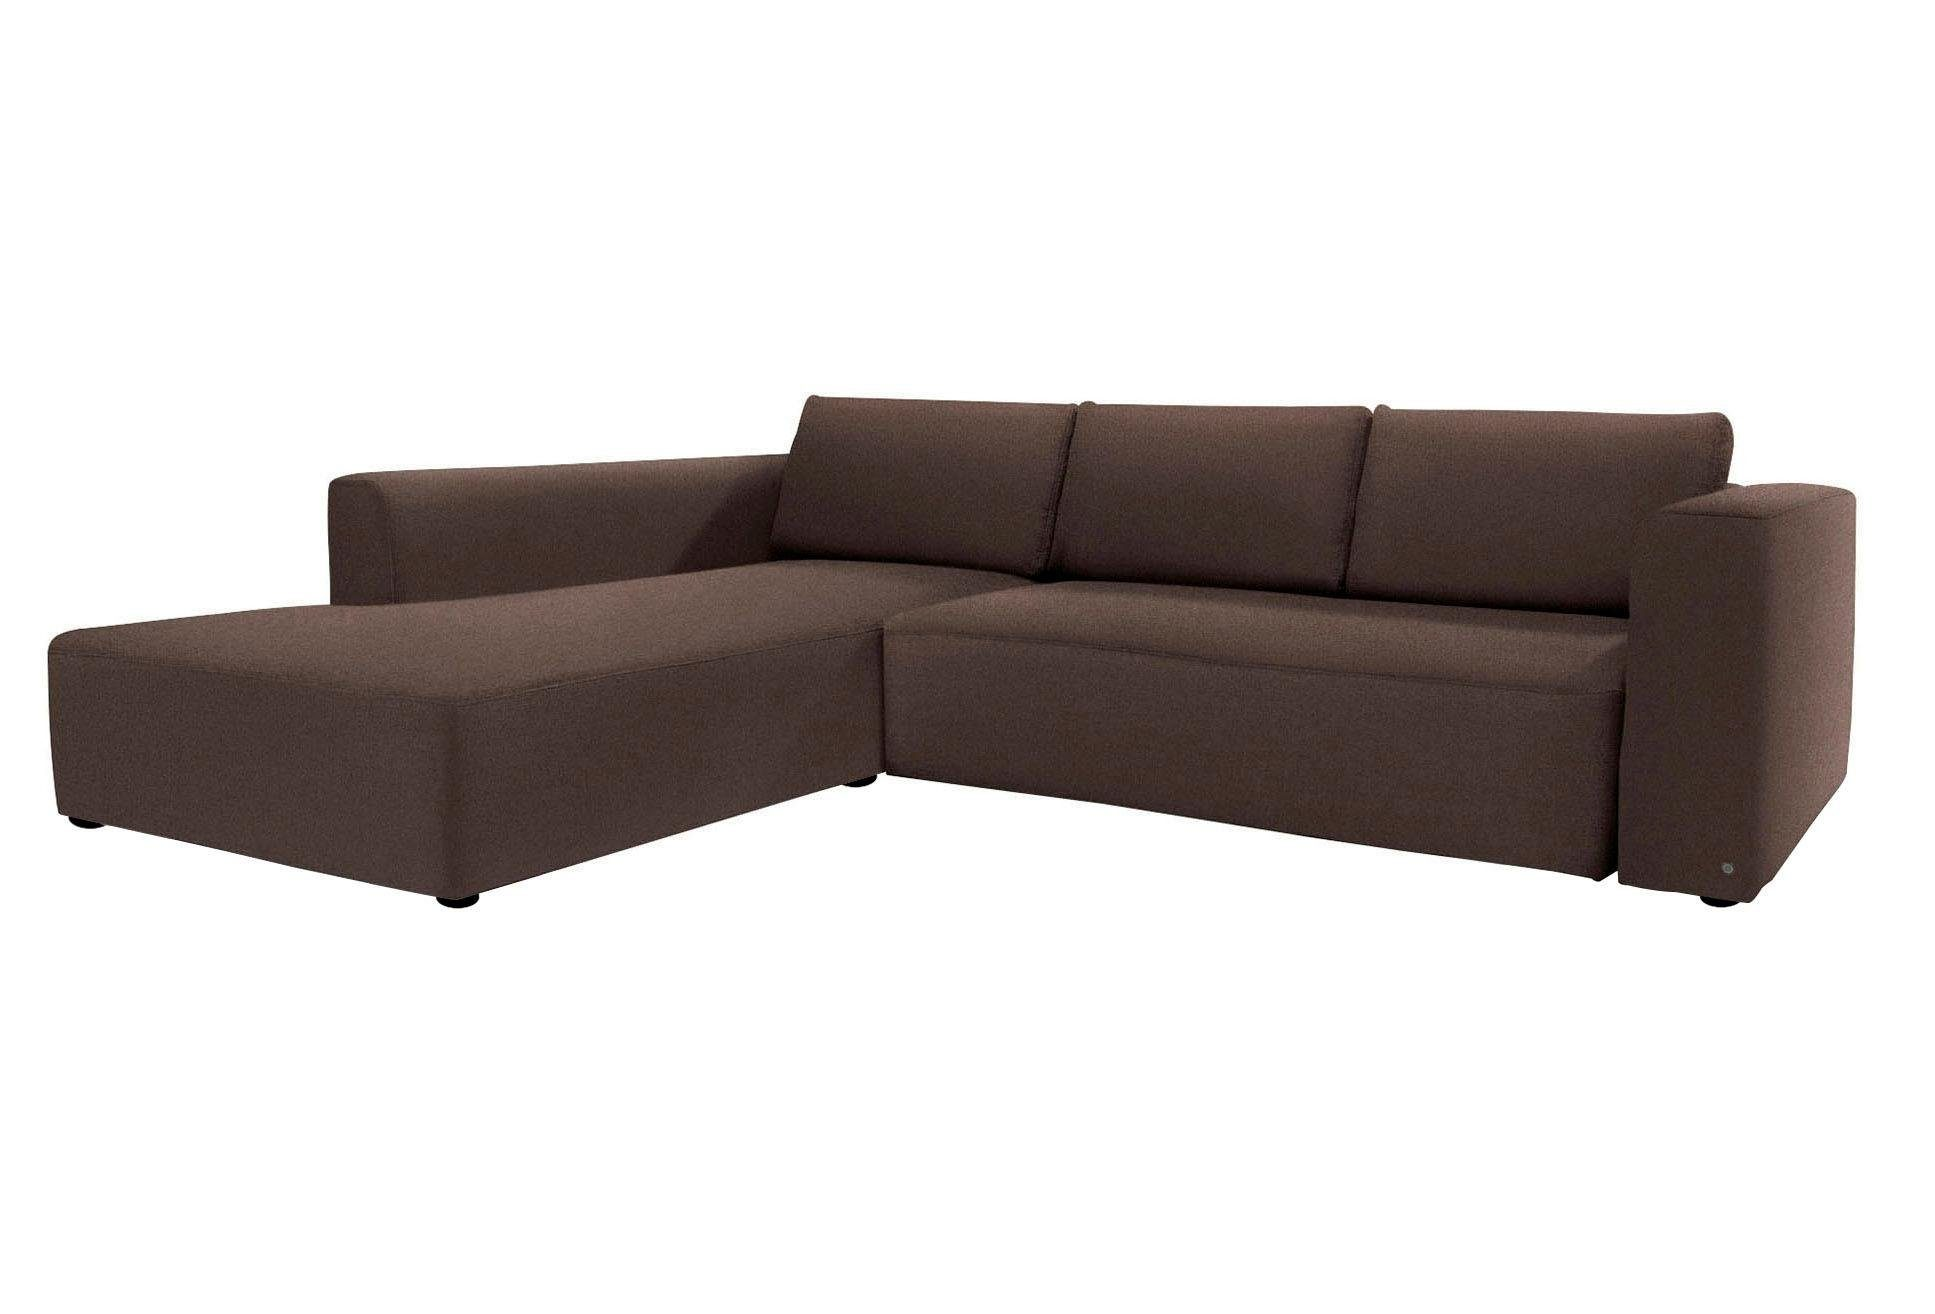 Full Size of Sofa Tom Tailor Elements Heaven Chic Big Cube Otto Xl Casual Nordic Pure S Ecksofa Heavenstylecolors Links Braun Mit Federkern Abnehmbarer Bezug Reinigen U Sofa Sofa Tom Tailor